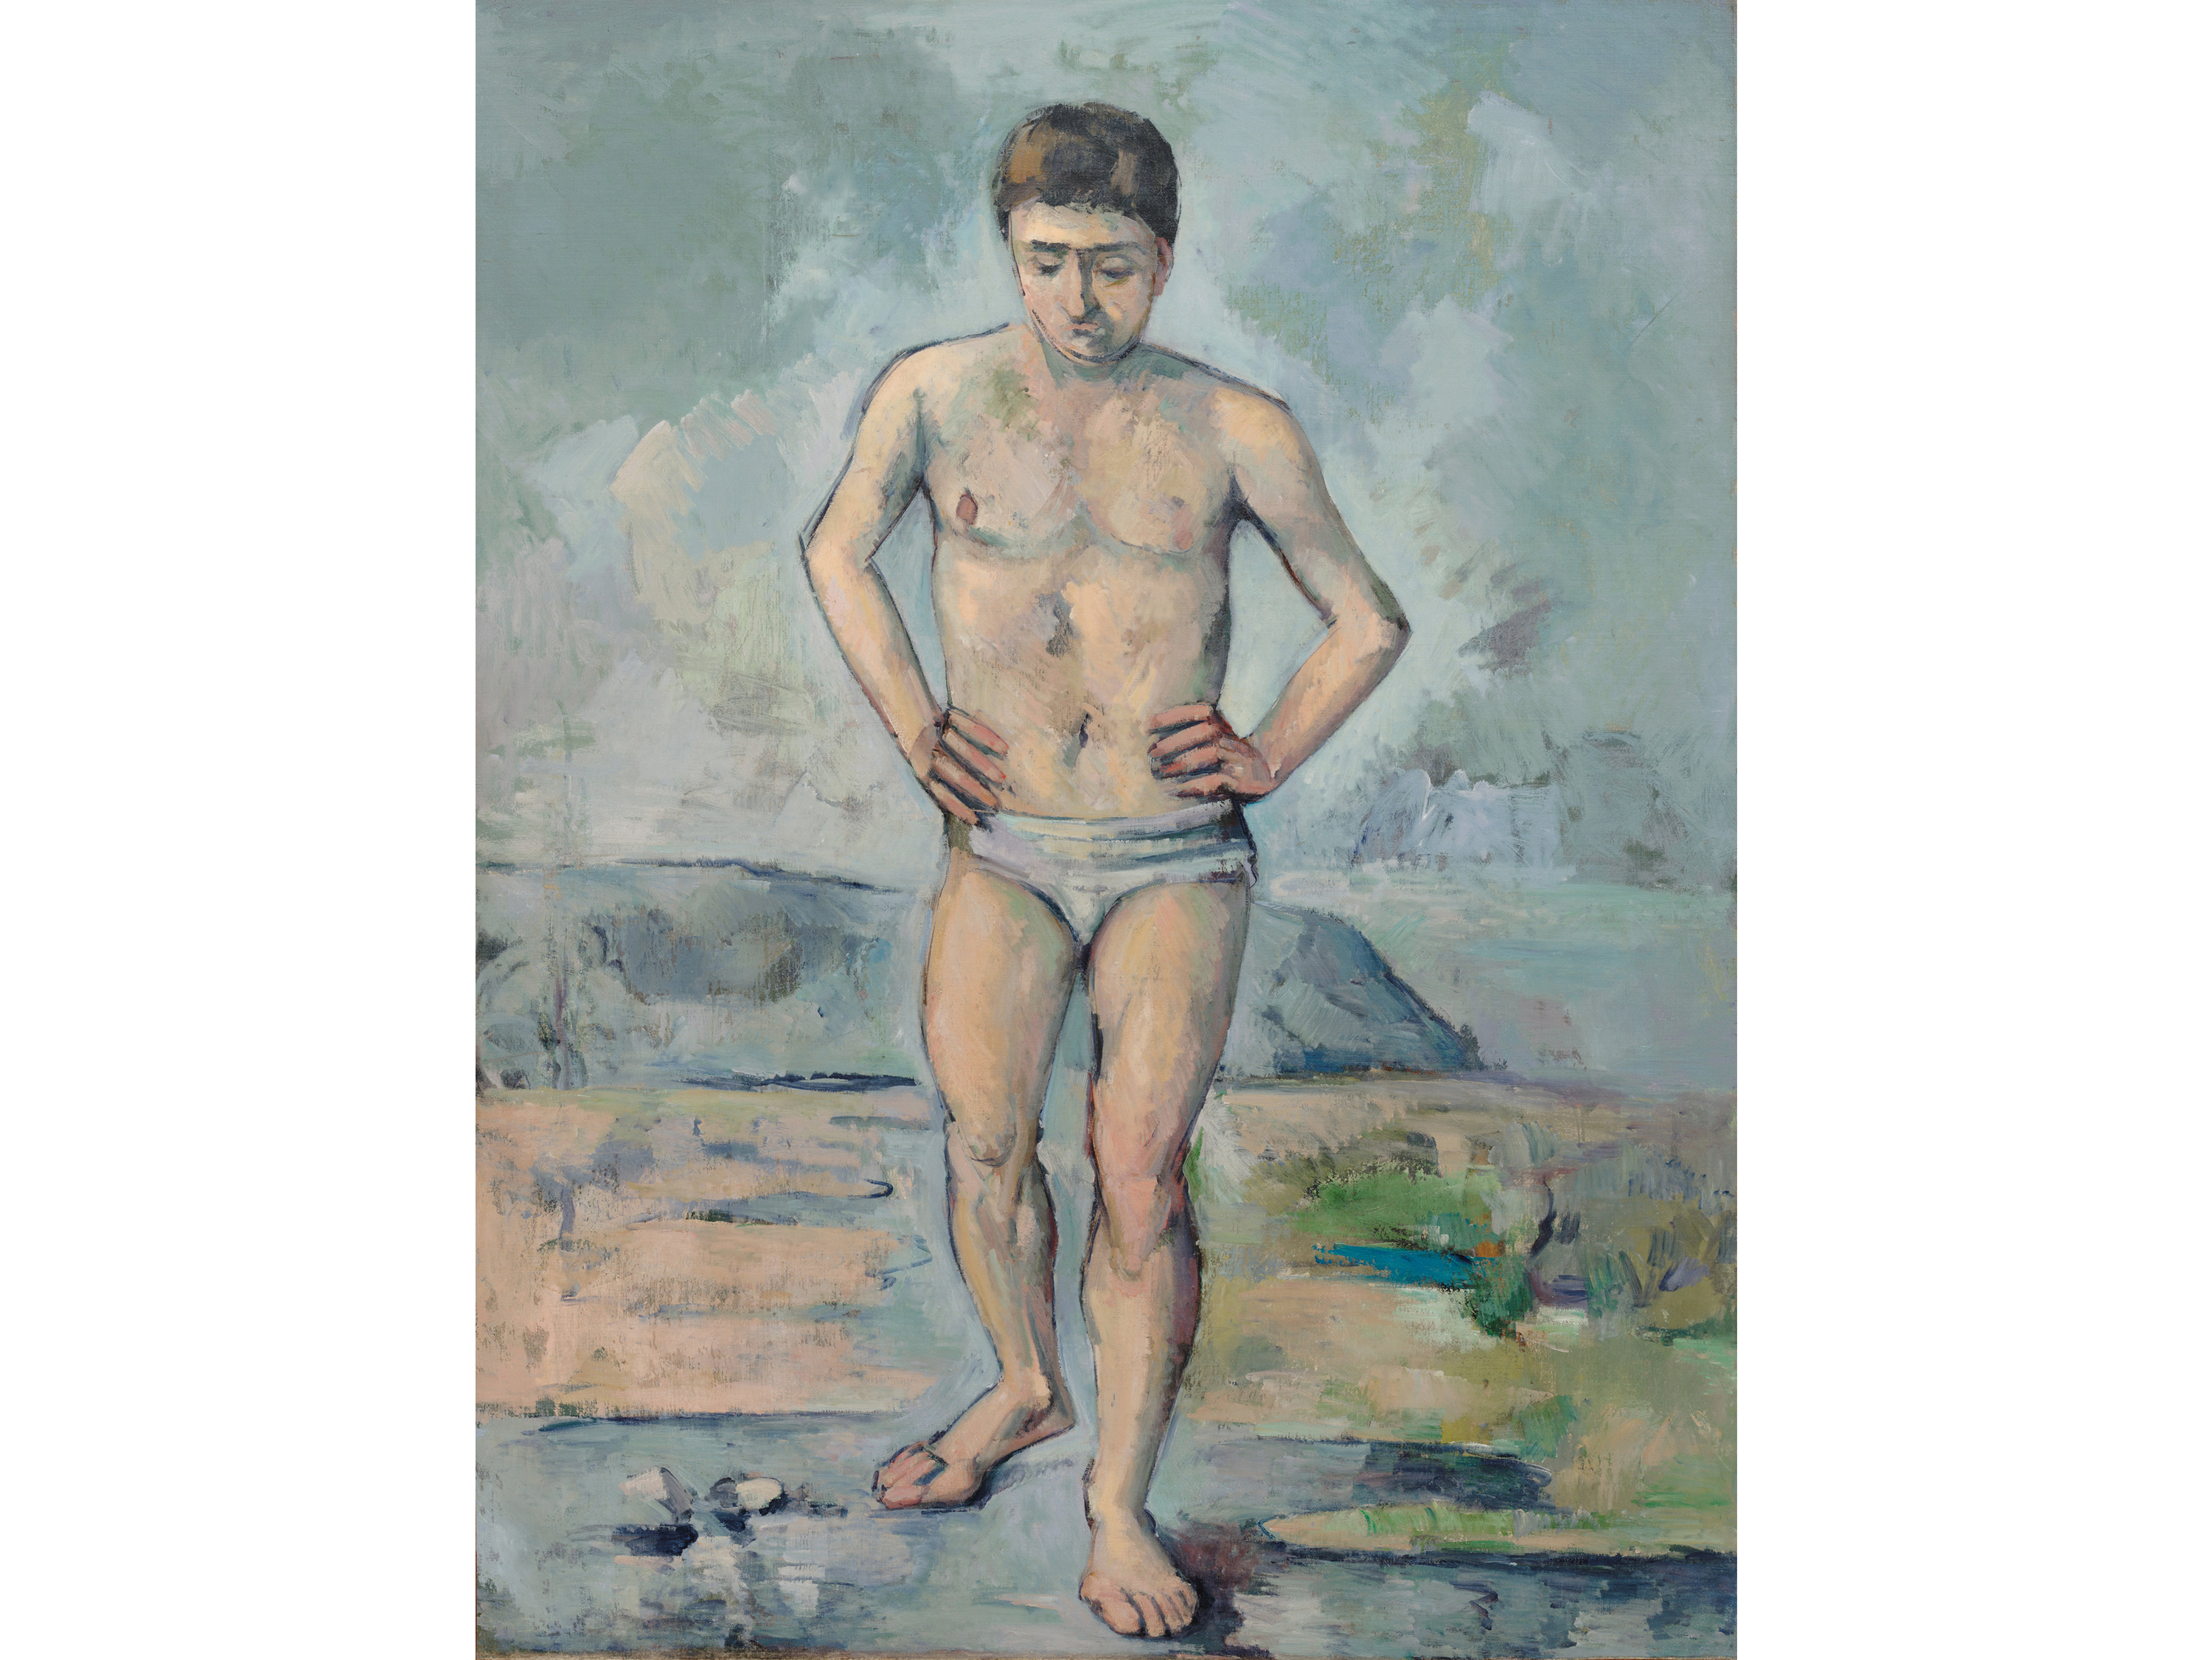 The Bather (1885), Paul Cézanne